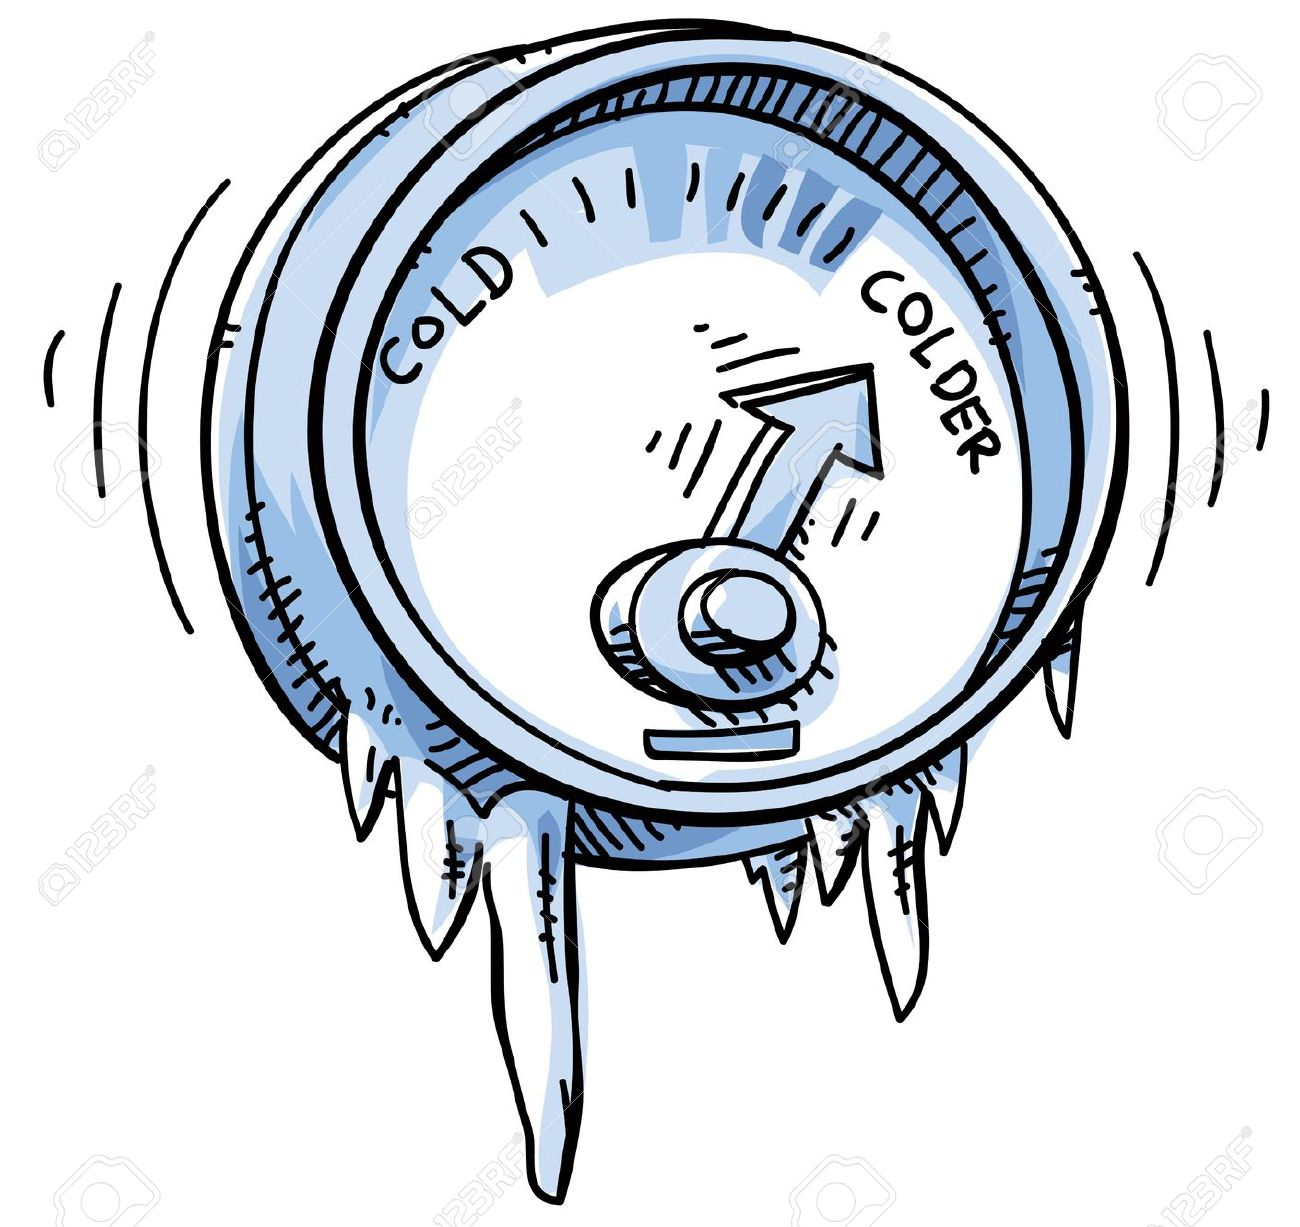 Chill clipart extreme cold  Cold Due Aqueduct Friday